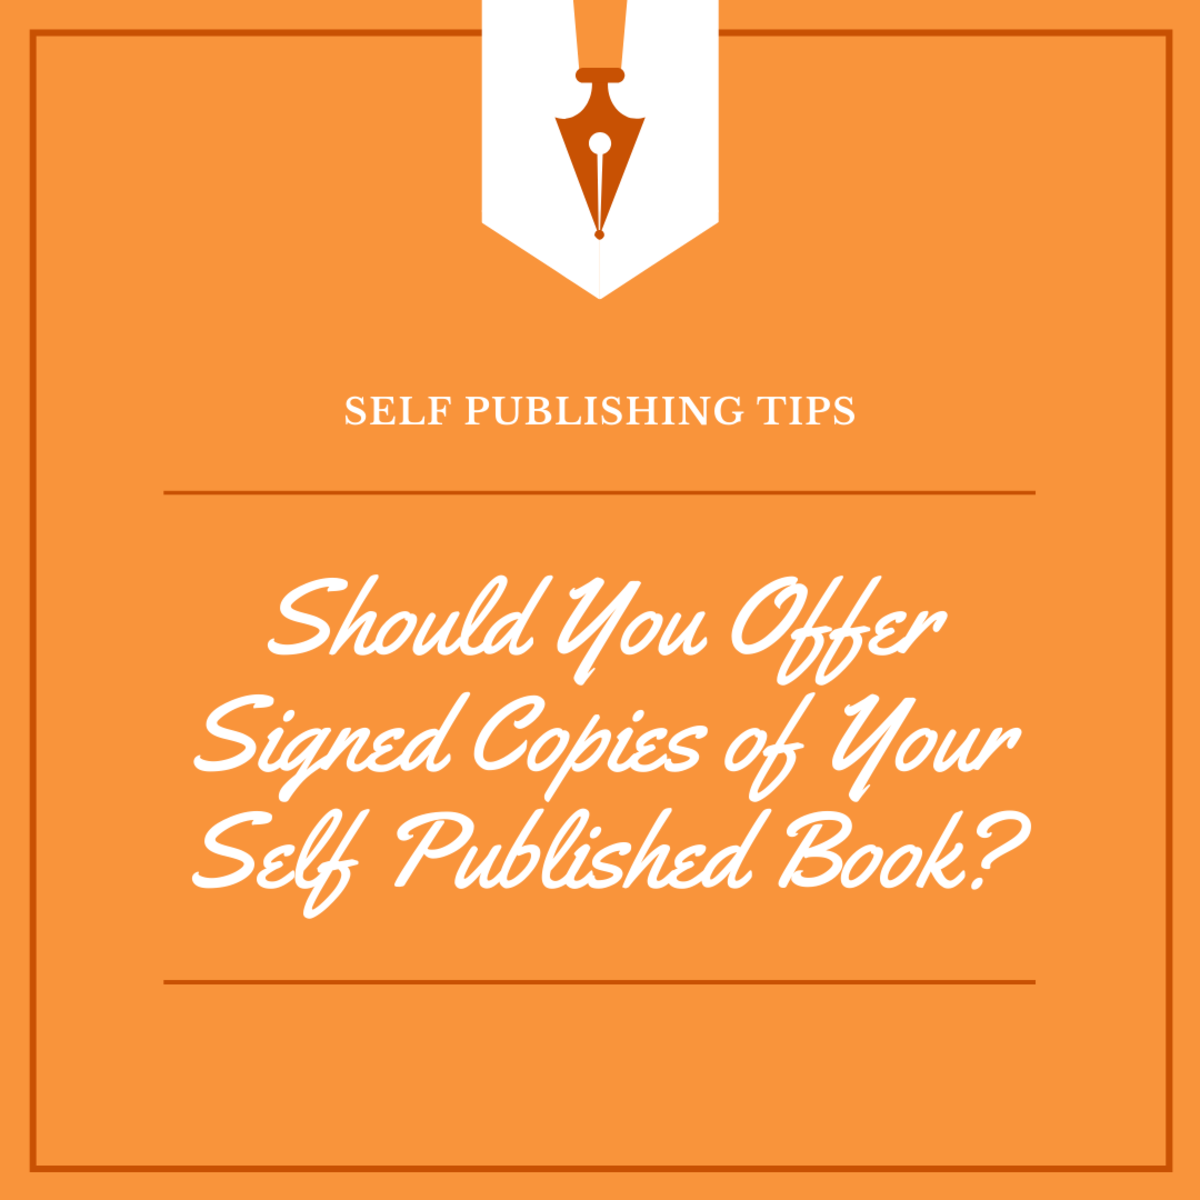 Is it worth it to offer signed copies of your self published book?